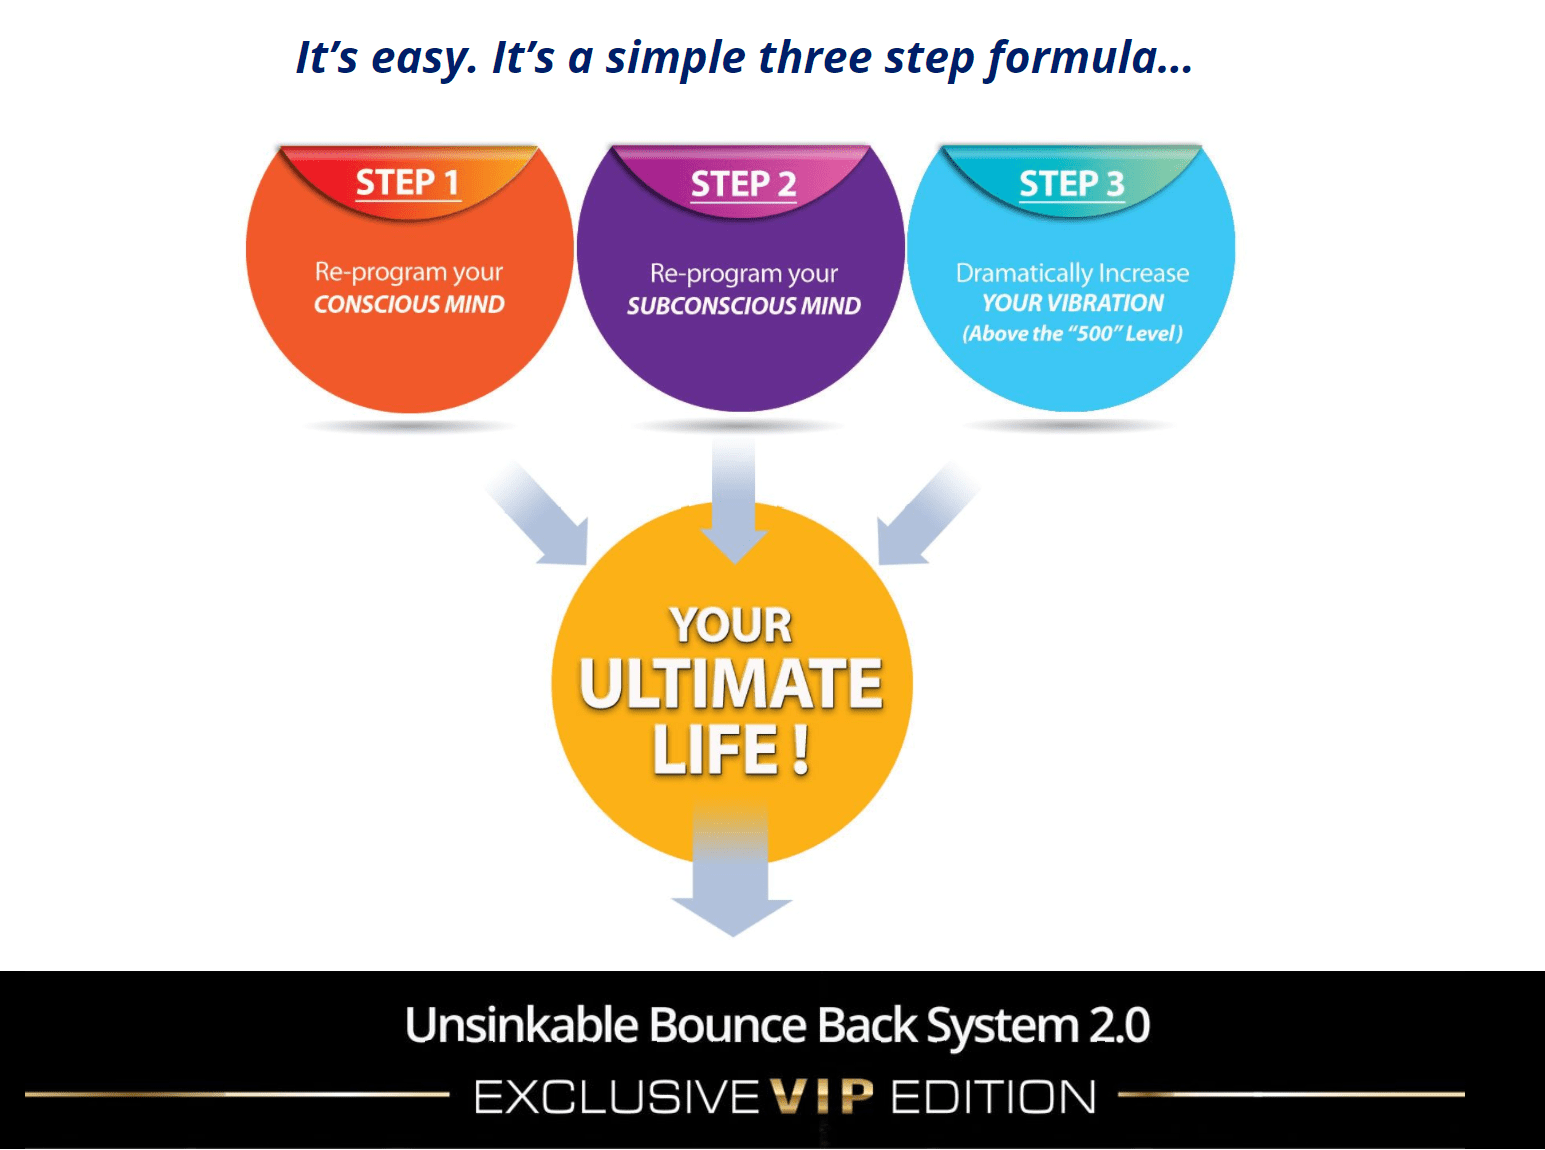 Unsinkable Bounce back system Review- Three step Formula